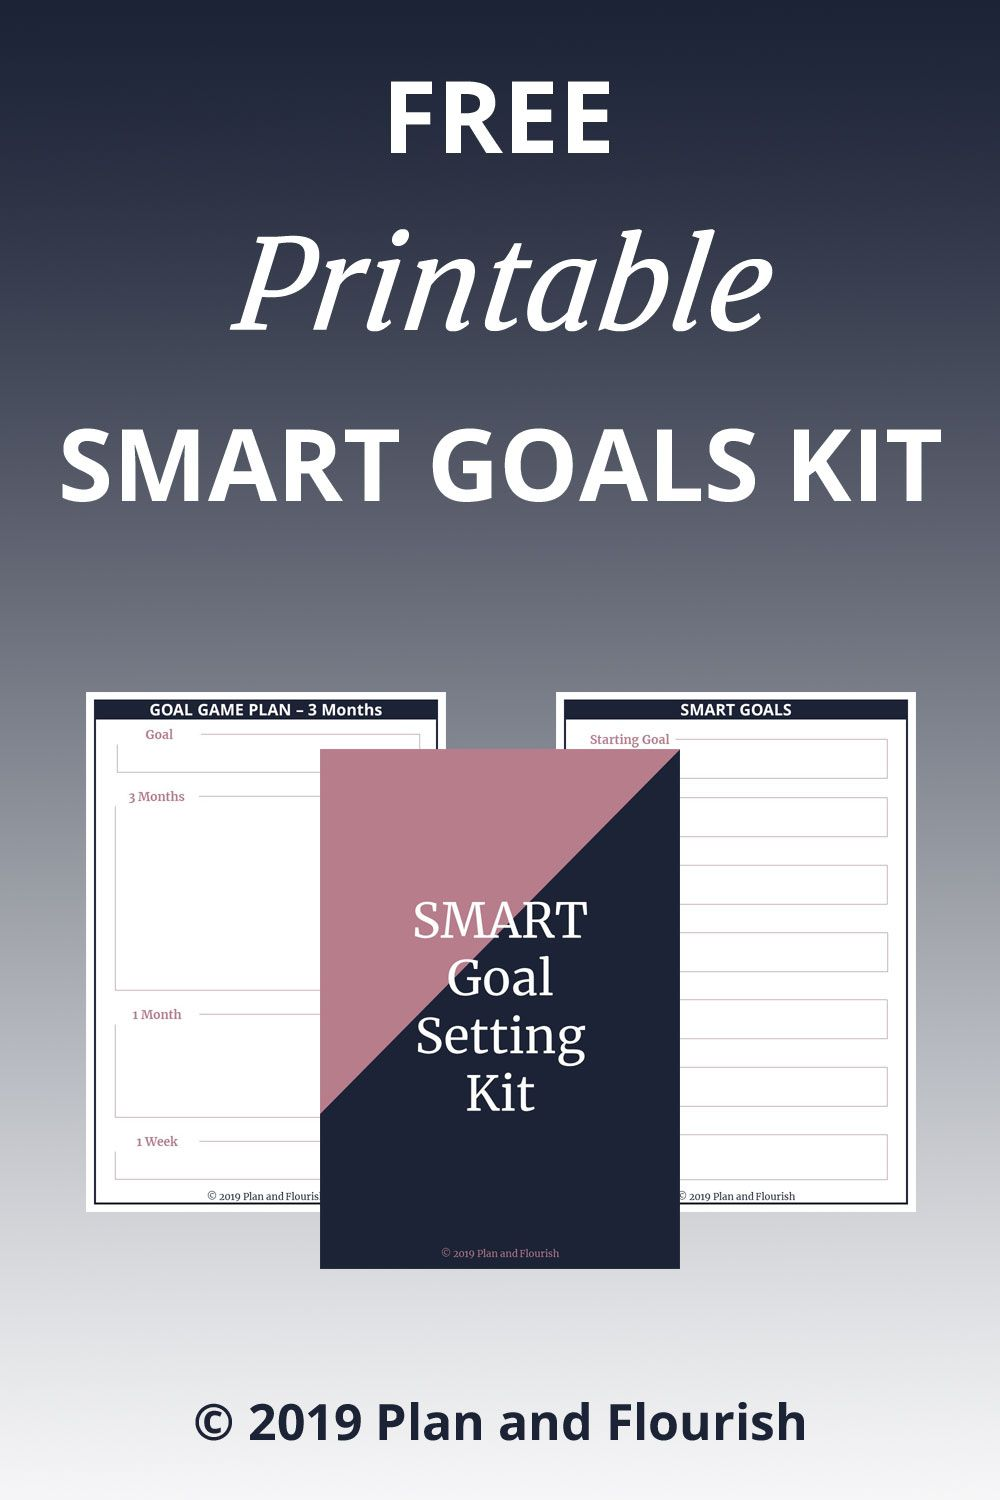 Are you looking for a new way to set goals? Do you want to